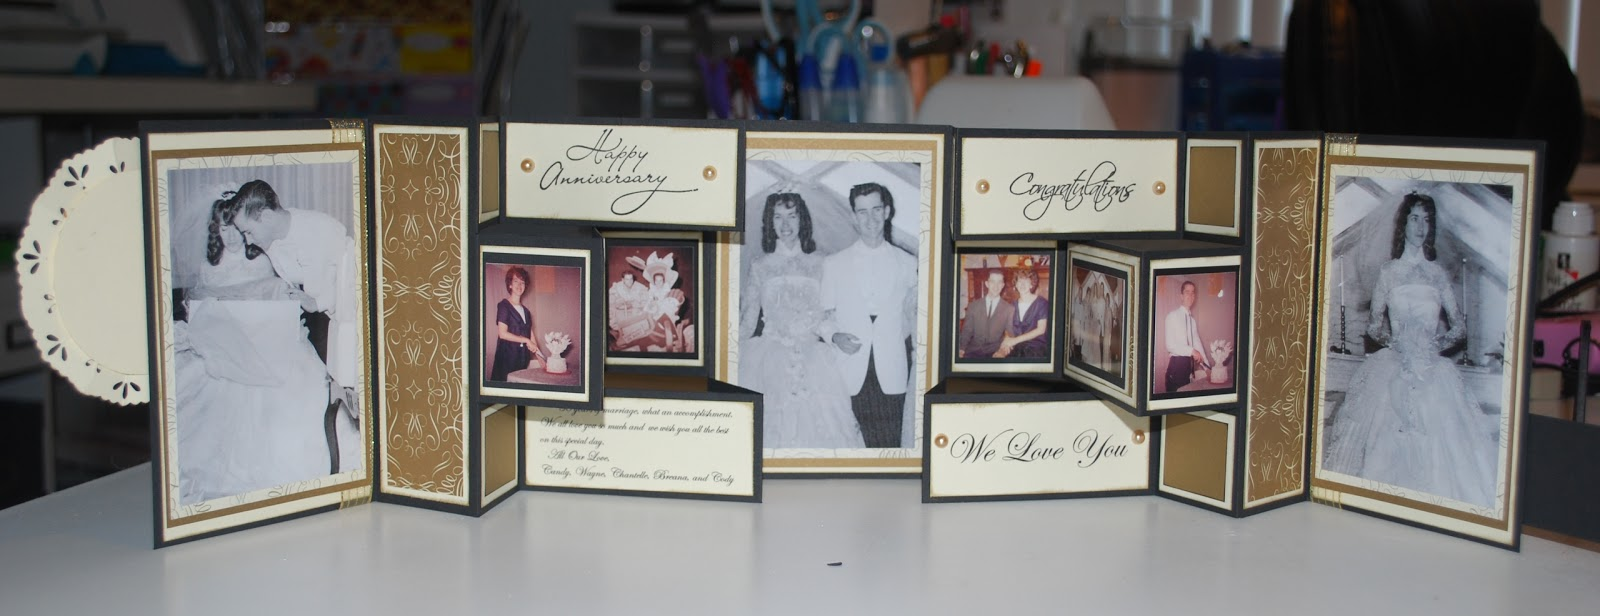 55th Wedding Anniversary Gift Ideas For Parents: Scrapbooking Ideas, Scrapbooking And 50th Wedding